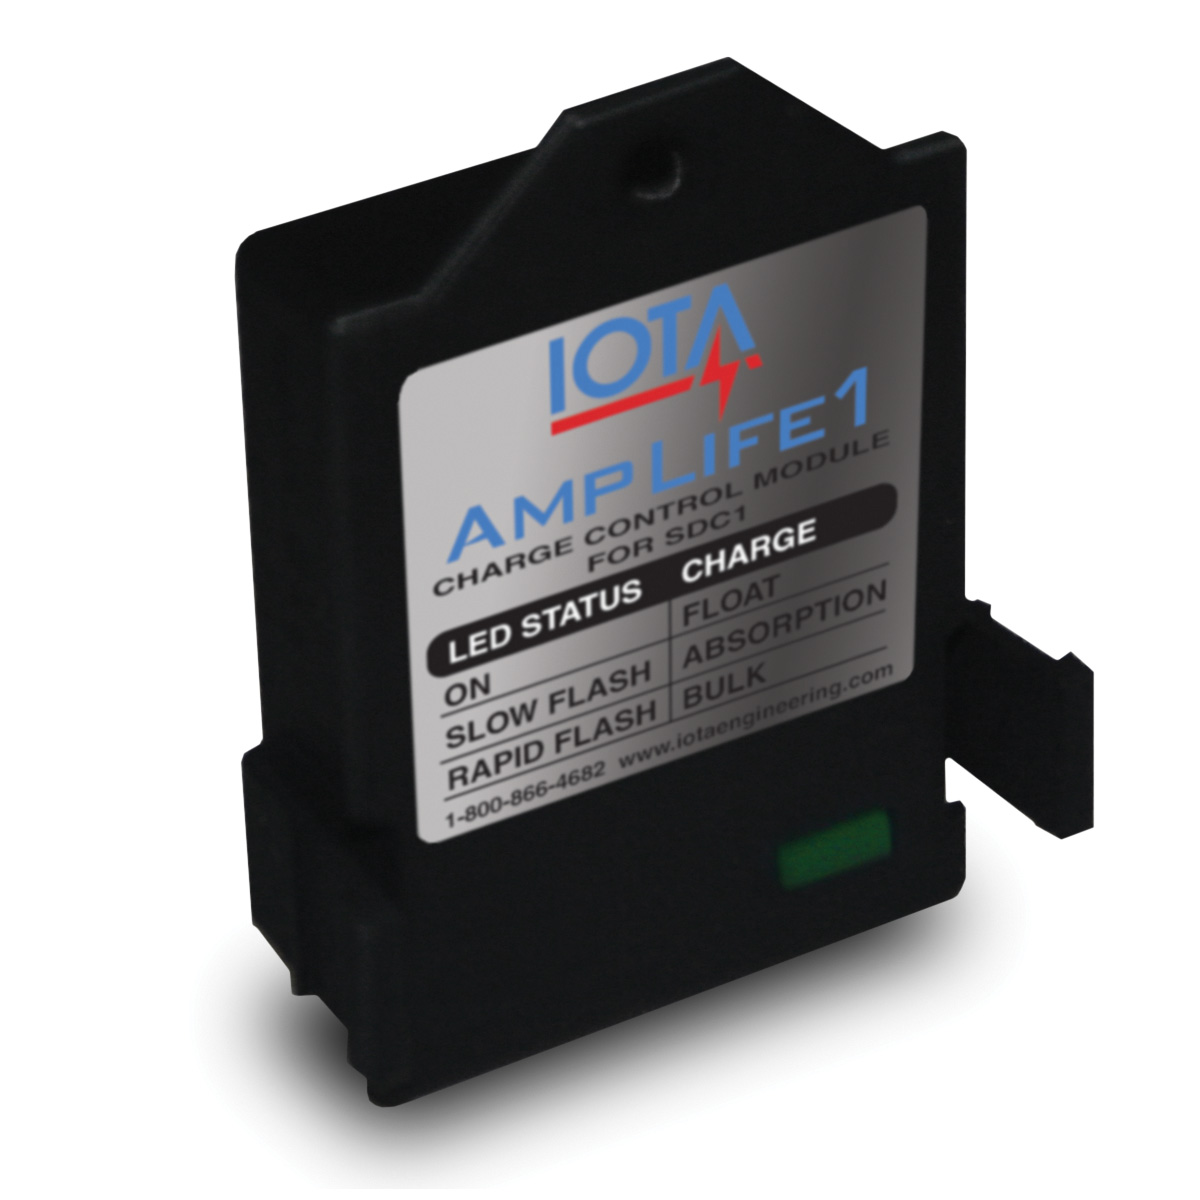 AL1 IOTA Engineering Battery Charger Controller For Solid-DC Series